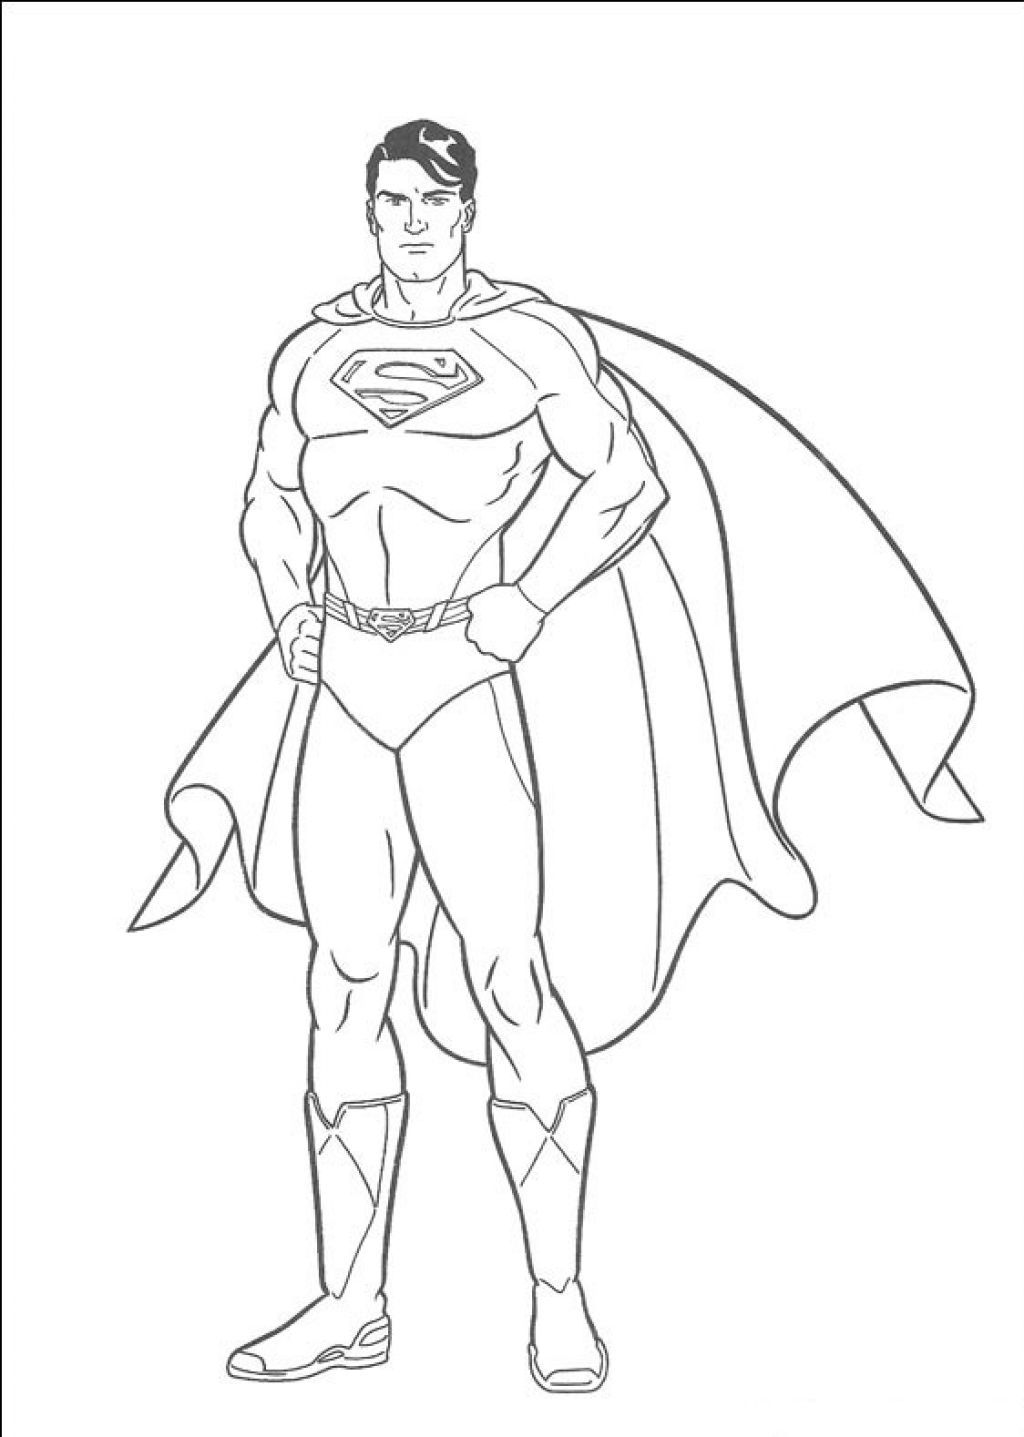 Free Superman Coloring Pages With 14 Kids Coloring Pages For